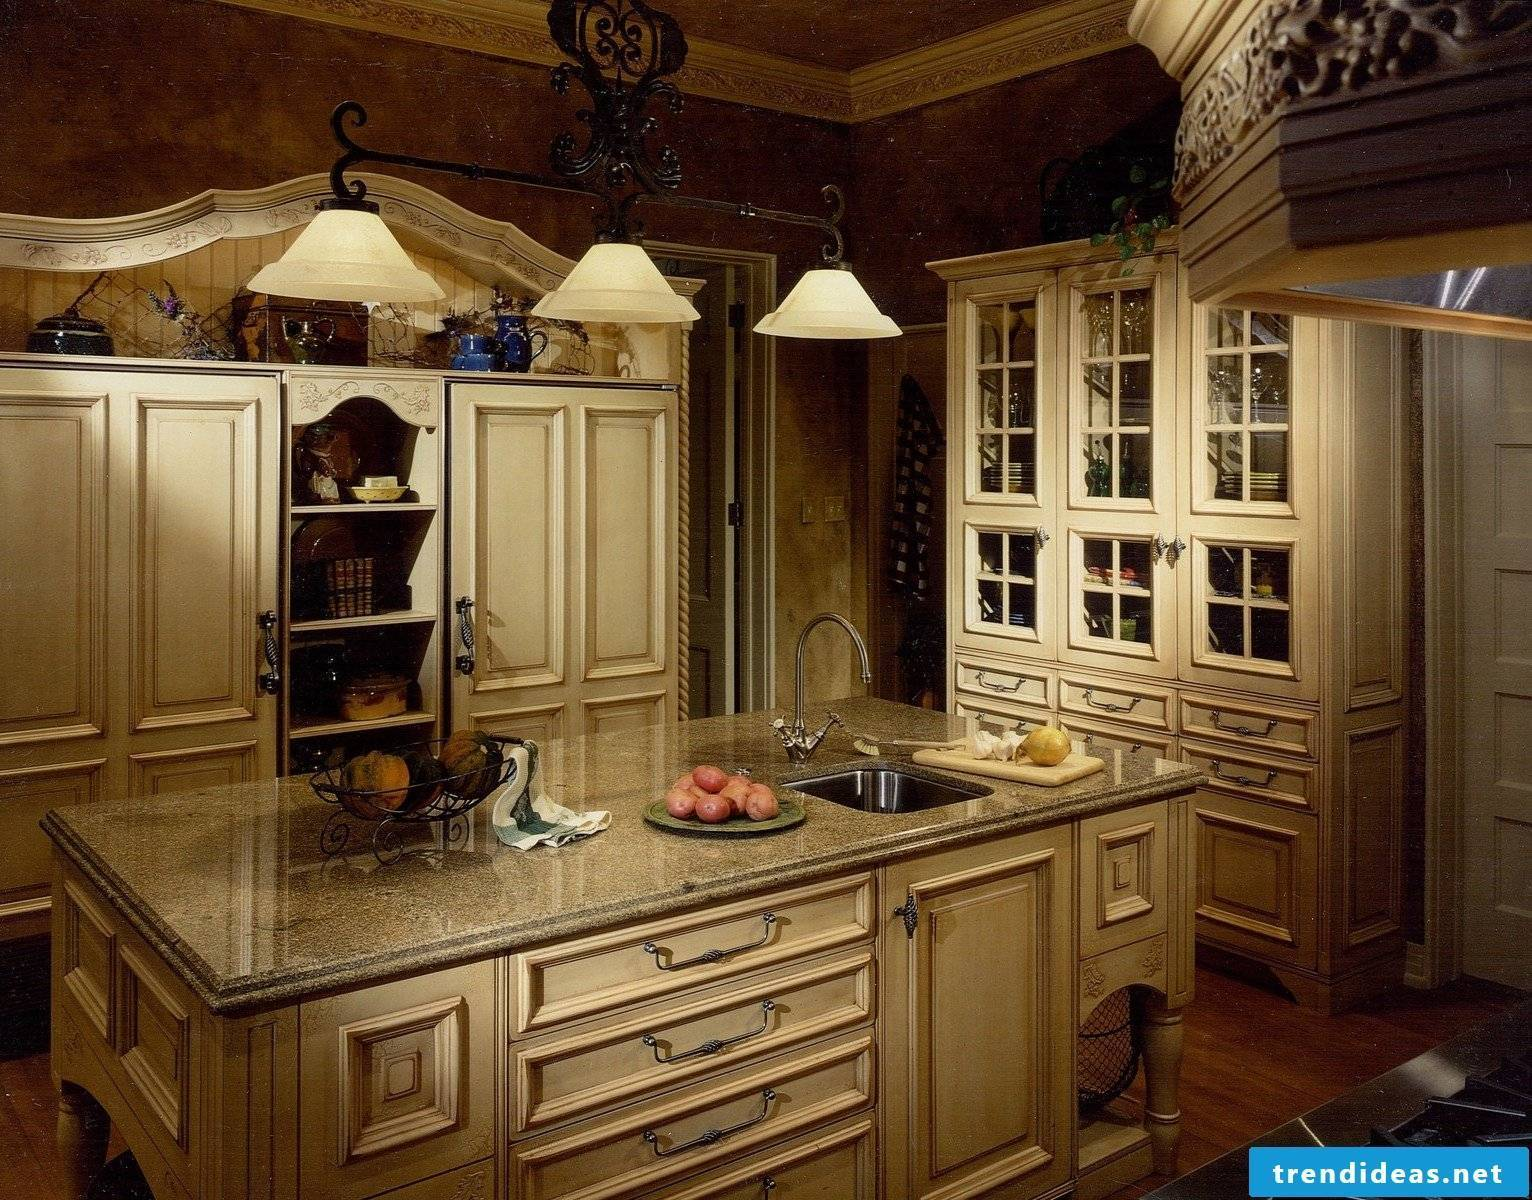 Chic romantic kitchen in country style